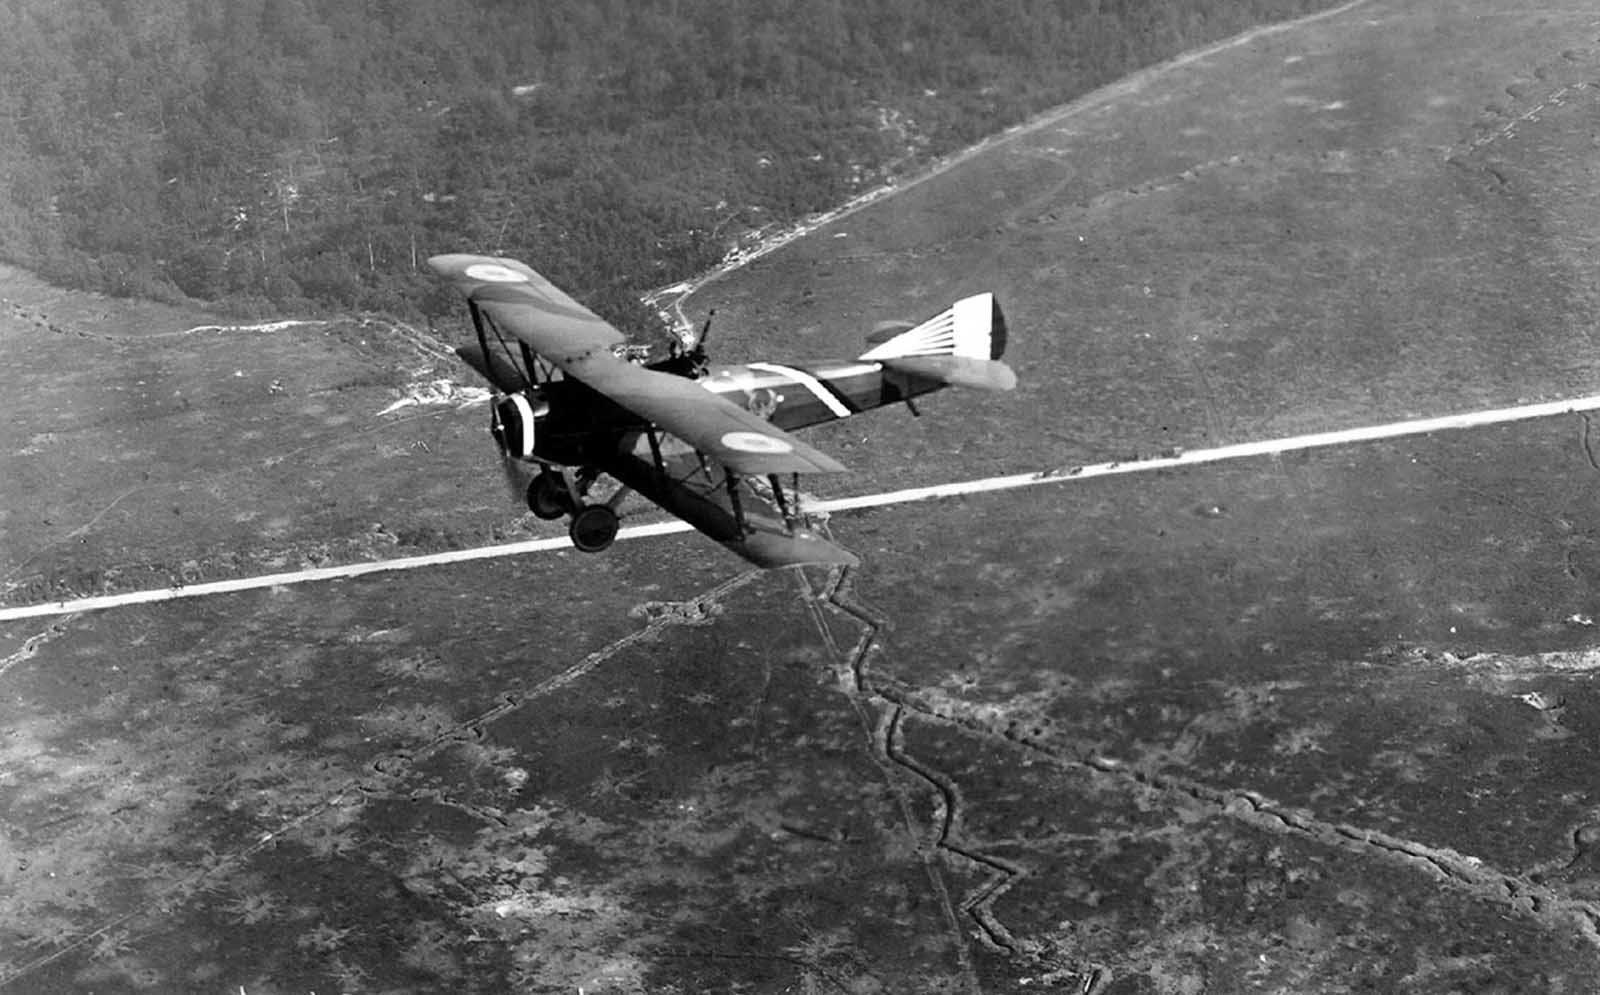 A French SPAD S.XVI two-seat biplane reconnaissance aircraft, flying over Compeign Sector, France ca. 1918. Note the zig-zag patterns of defensive trenches in the fields below.